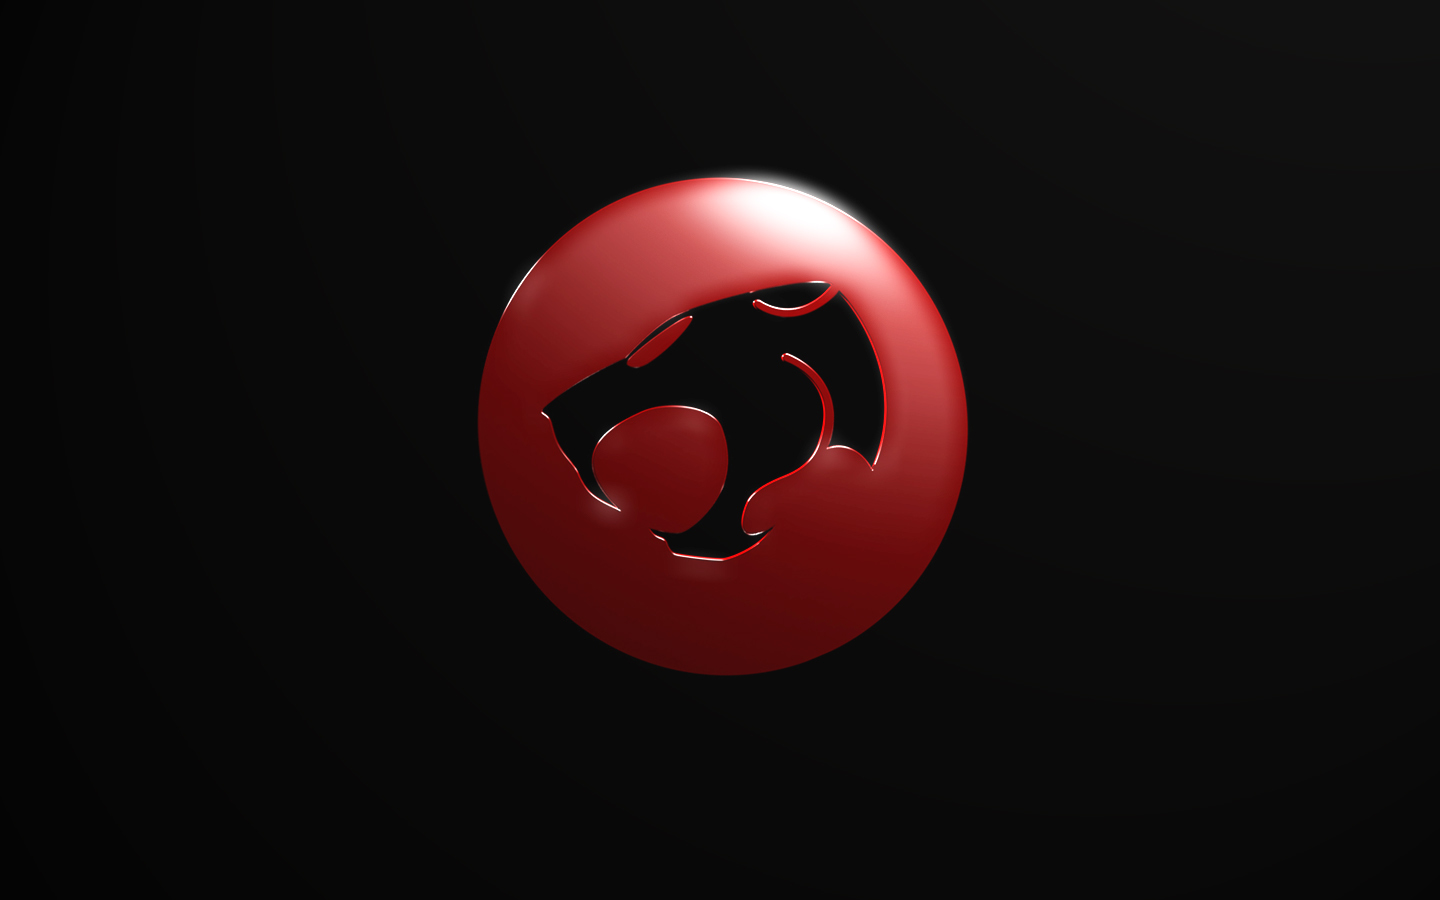 Thundercats Free Games on Thundercats Logo Hd Wallpaper   Games   32489